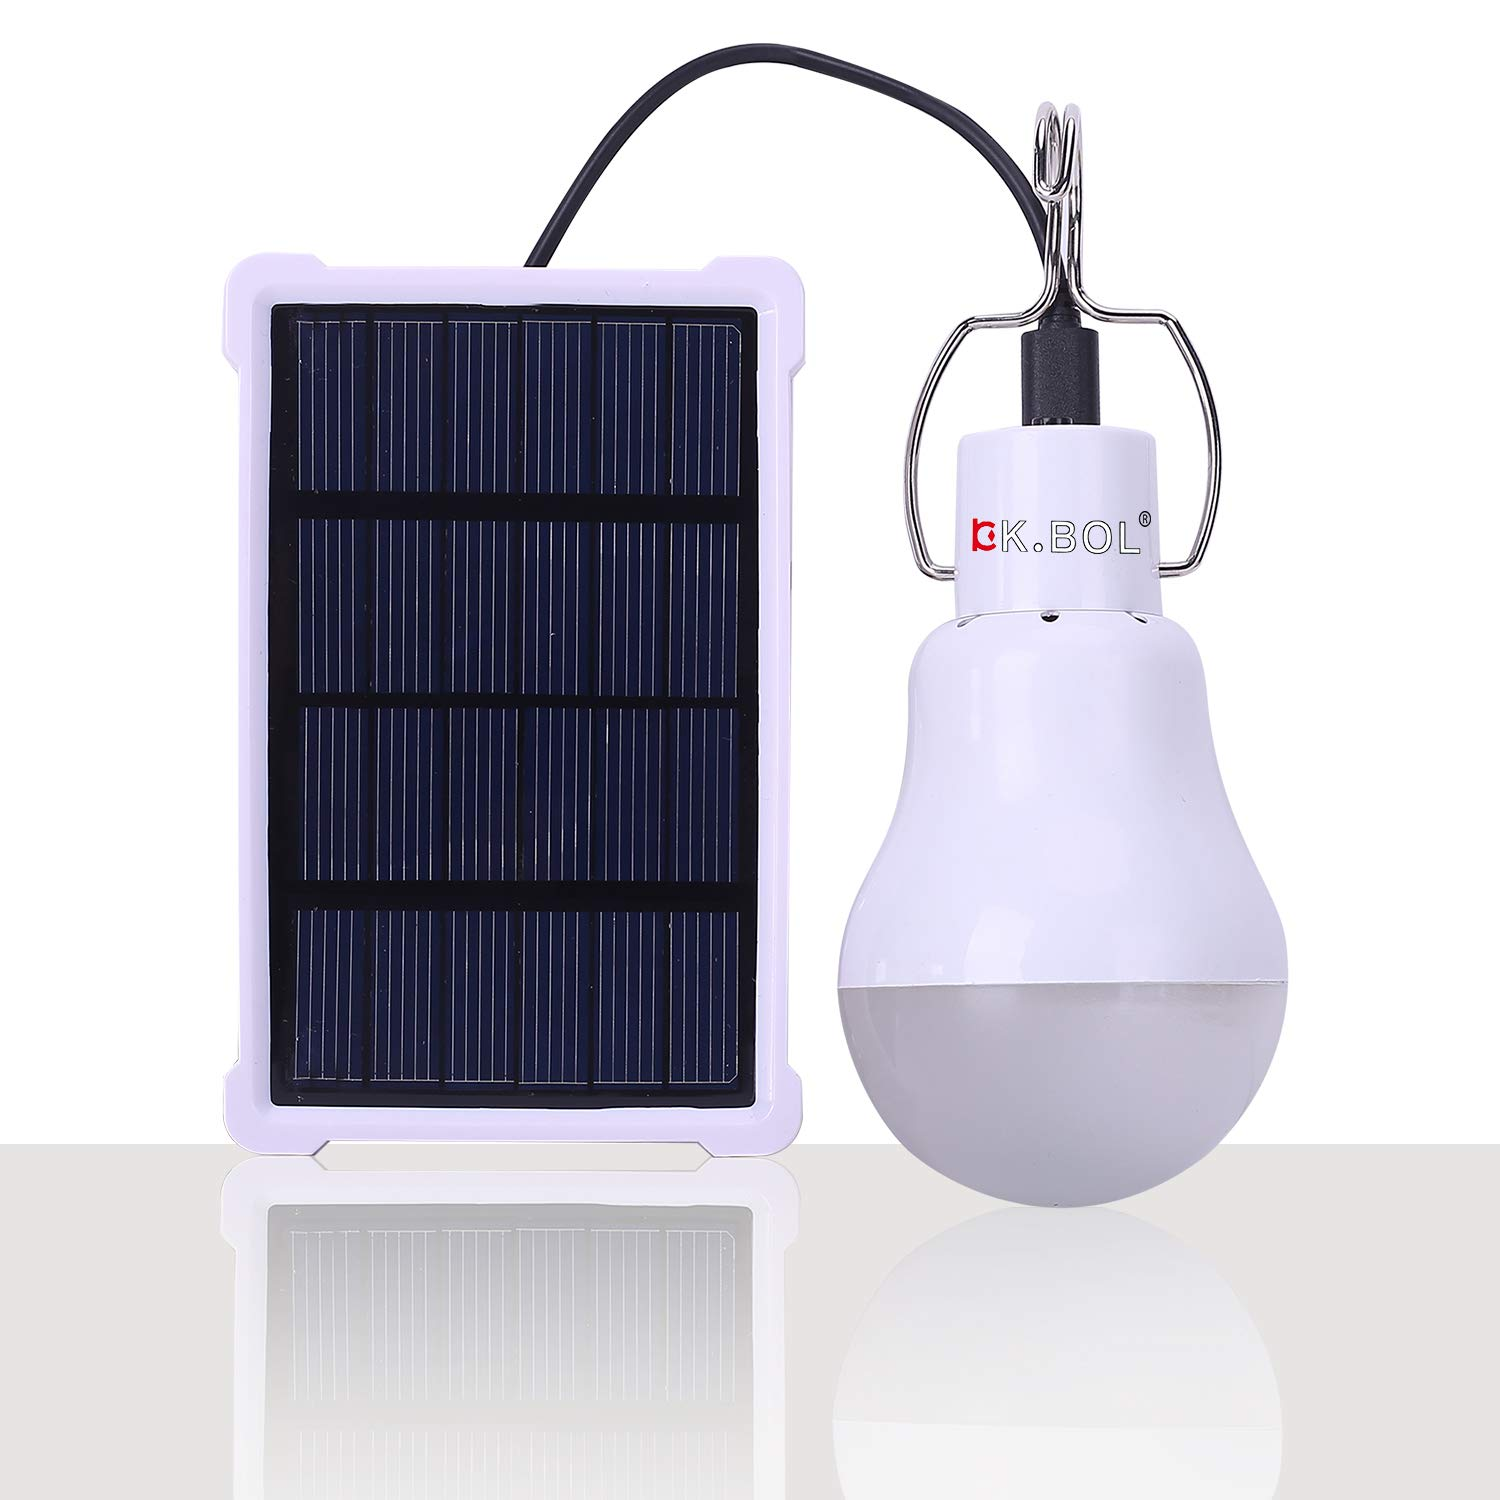 KK.BOL Solar Lamp Portable LED Light Bulb Solar Panel Powered Rechargeable Lantern Lights Lamps for Home Shed Barn Indoor Outdoor Emergency Hiking Tent Reading Camping Night Work Light (1600mAh 150LM)